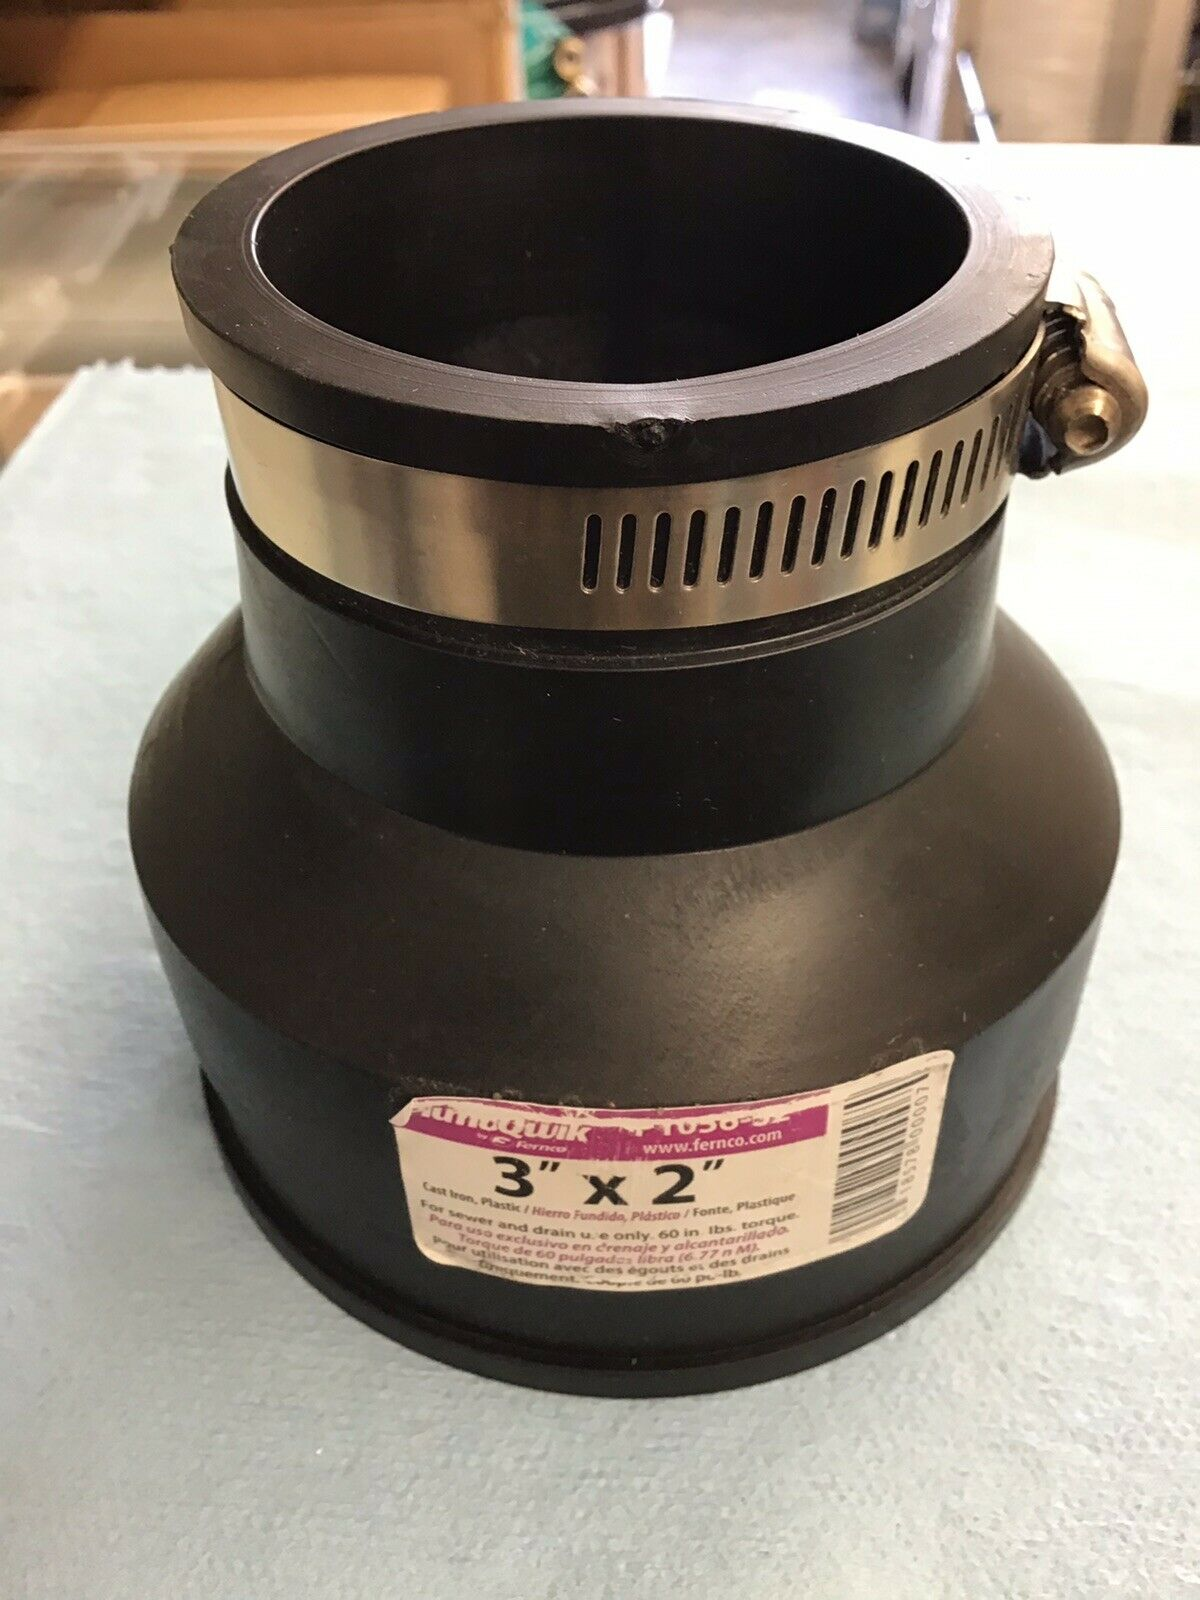 Flexible Coupling For Pipe Size 3 x 2 Pack of 5 Fernco 105632